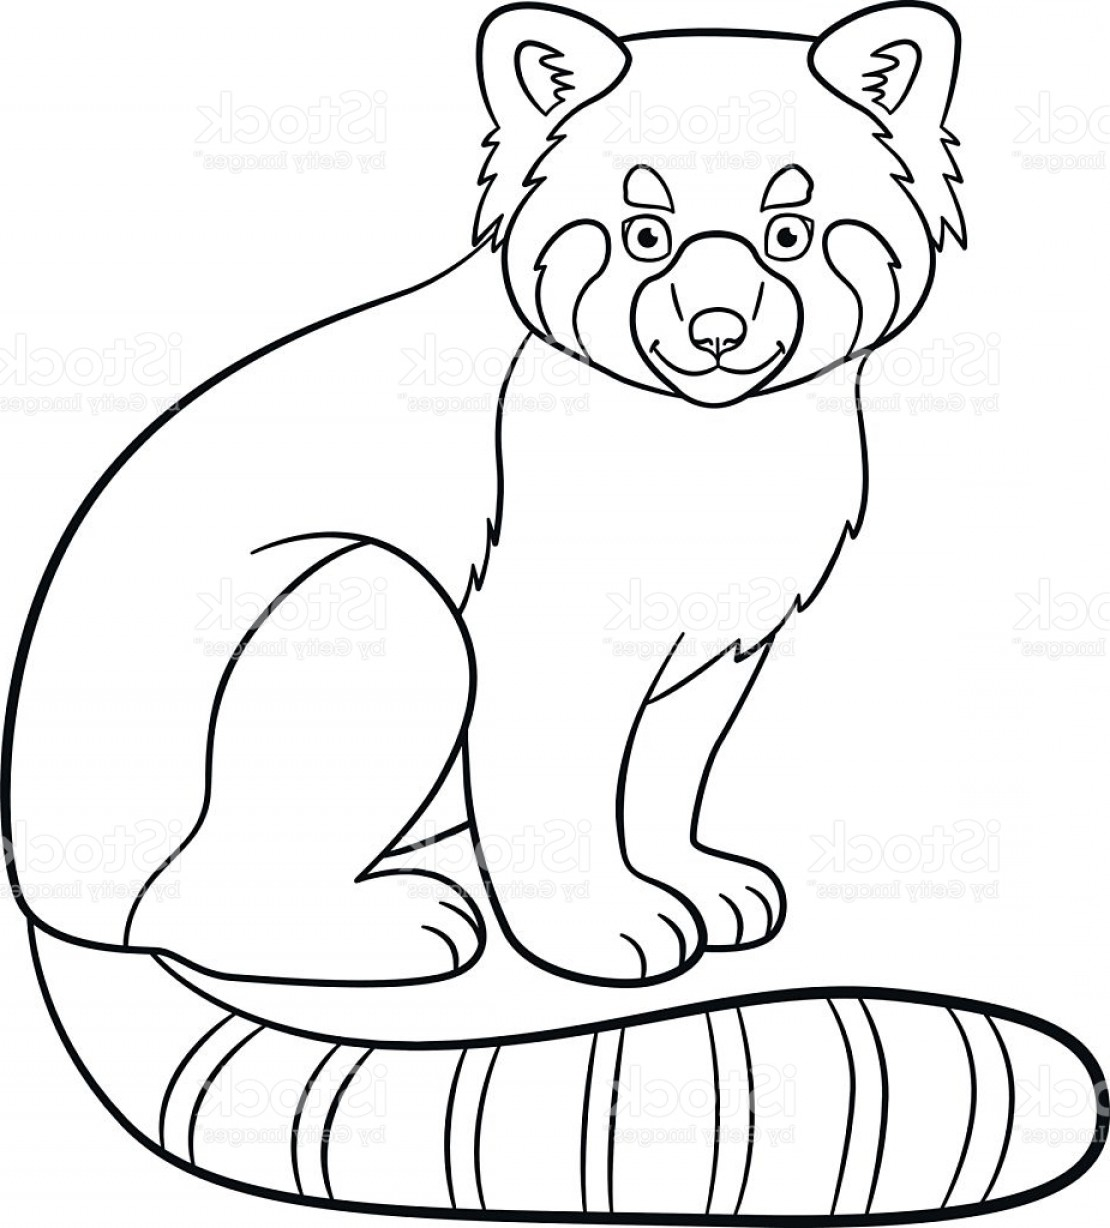 Red Panda Coloring Page Best Of Coloring Pages Little Cute Red Panda Smiles Stock Vector Art